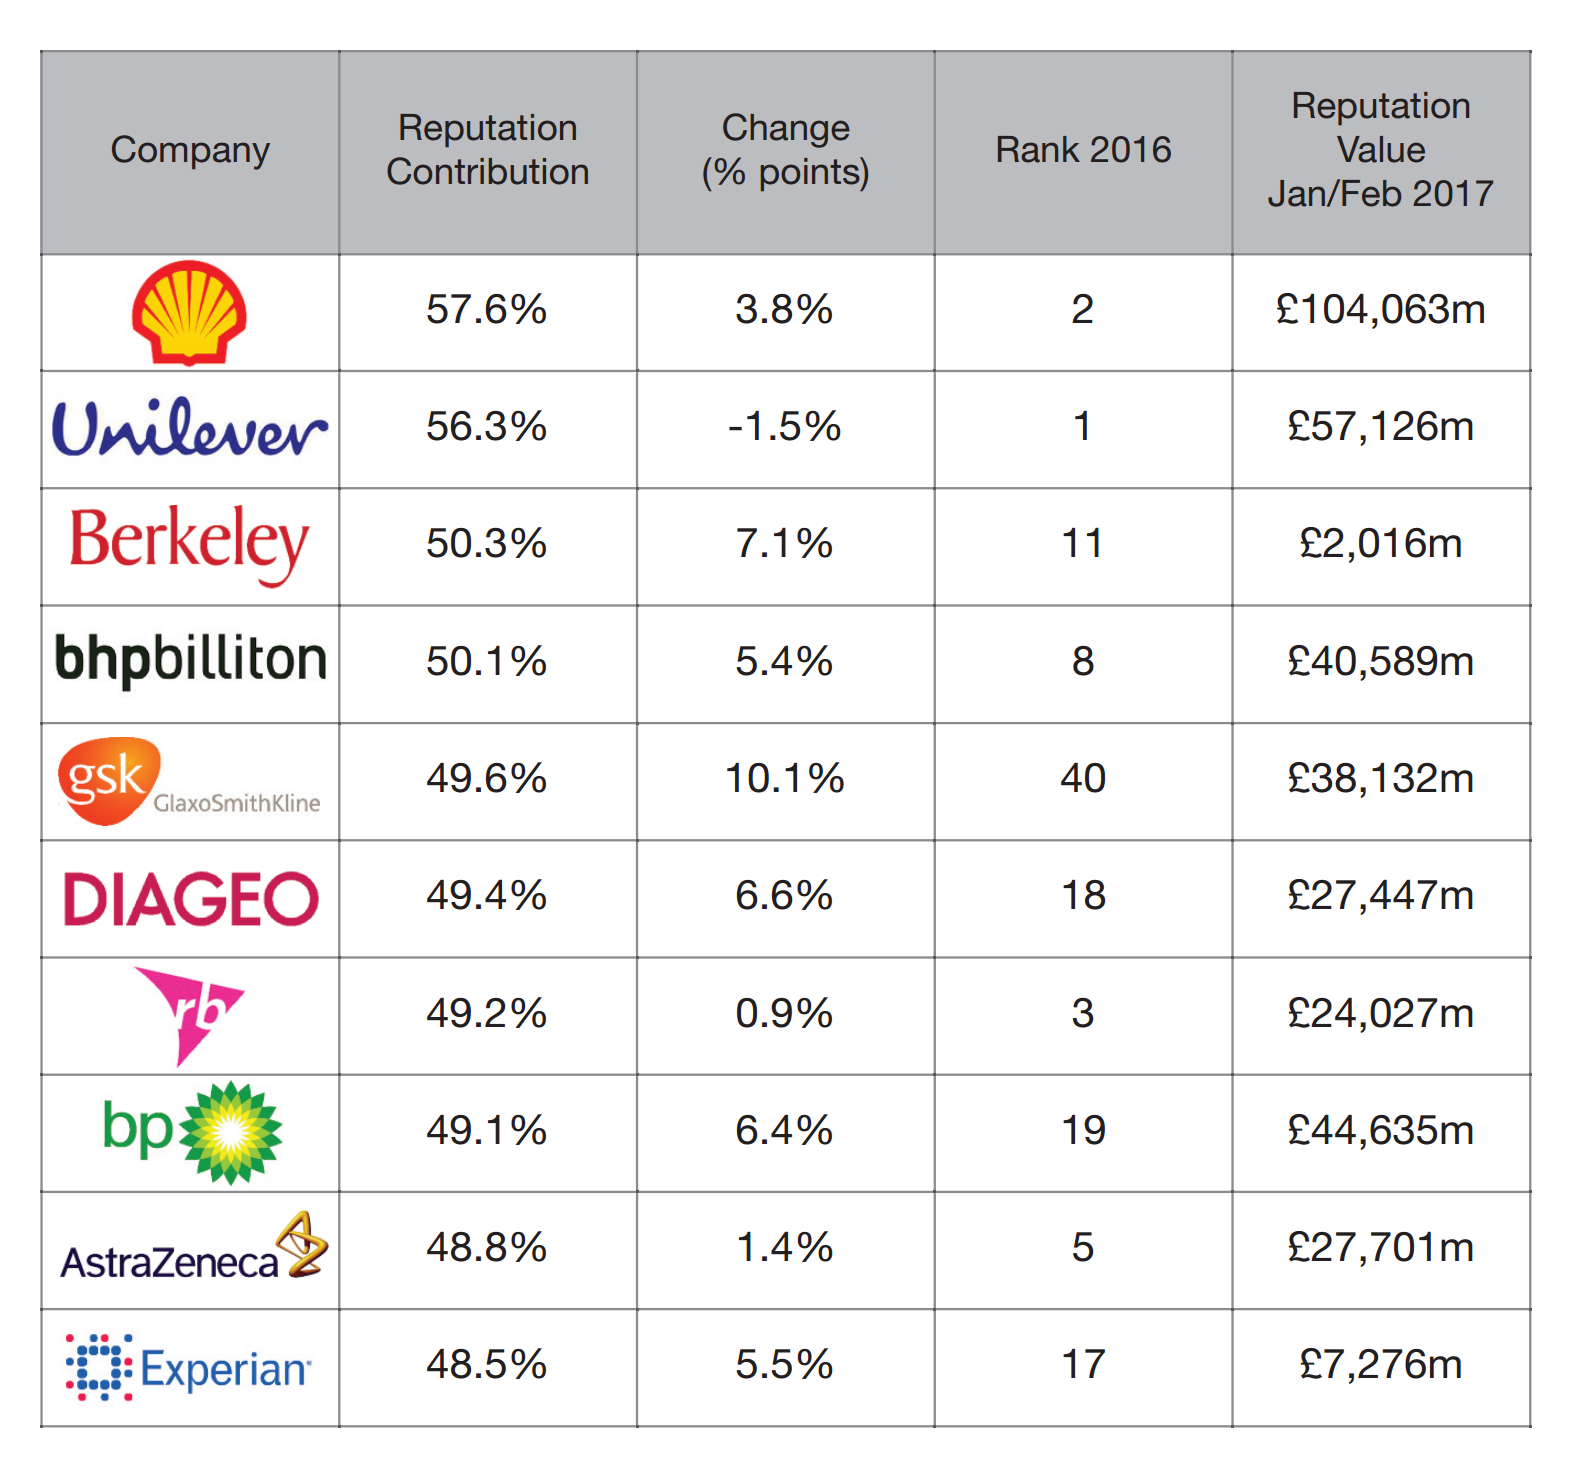 Reputation Dividend UK Top 10